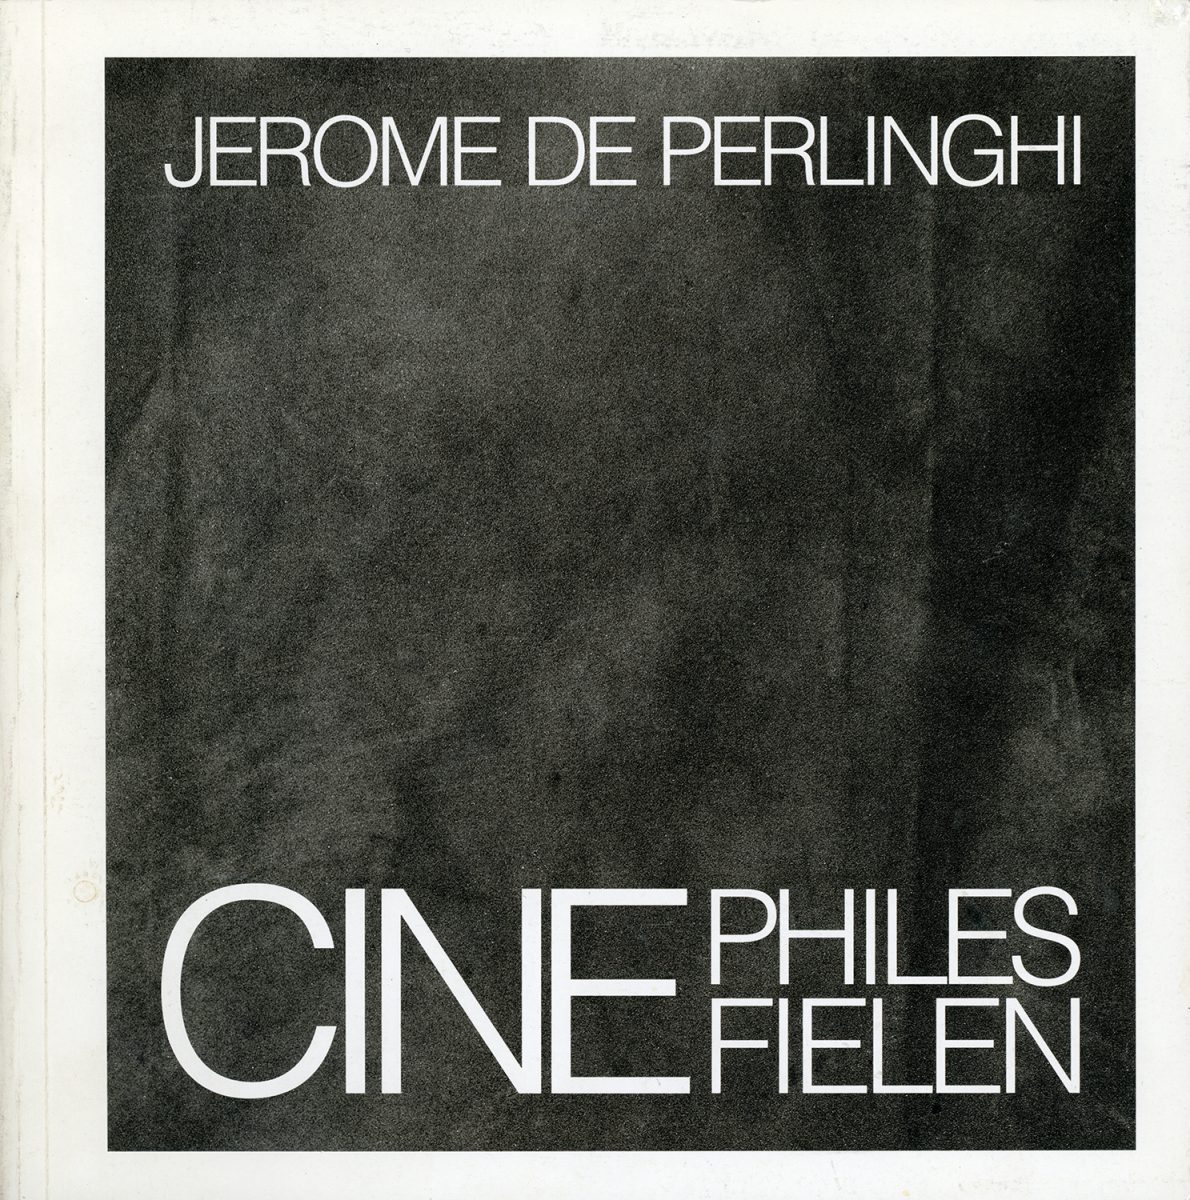 Cinephiles/Cinefielen by Jerome De Perlinghi